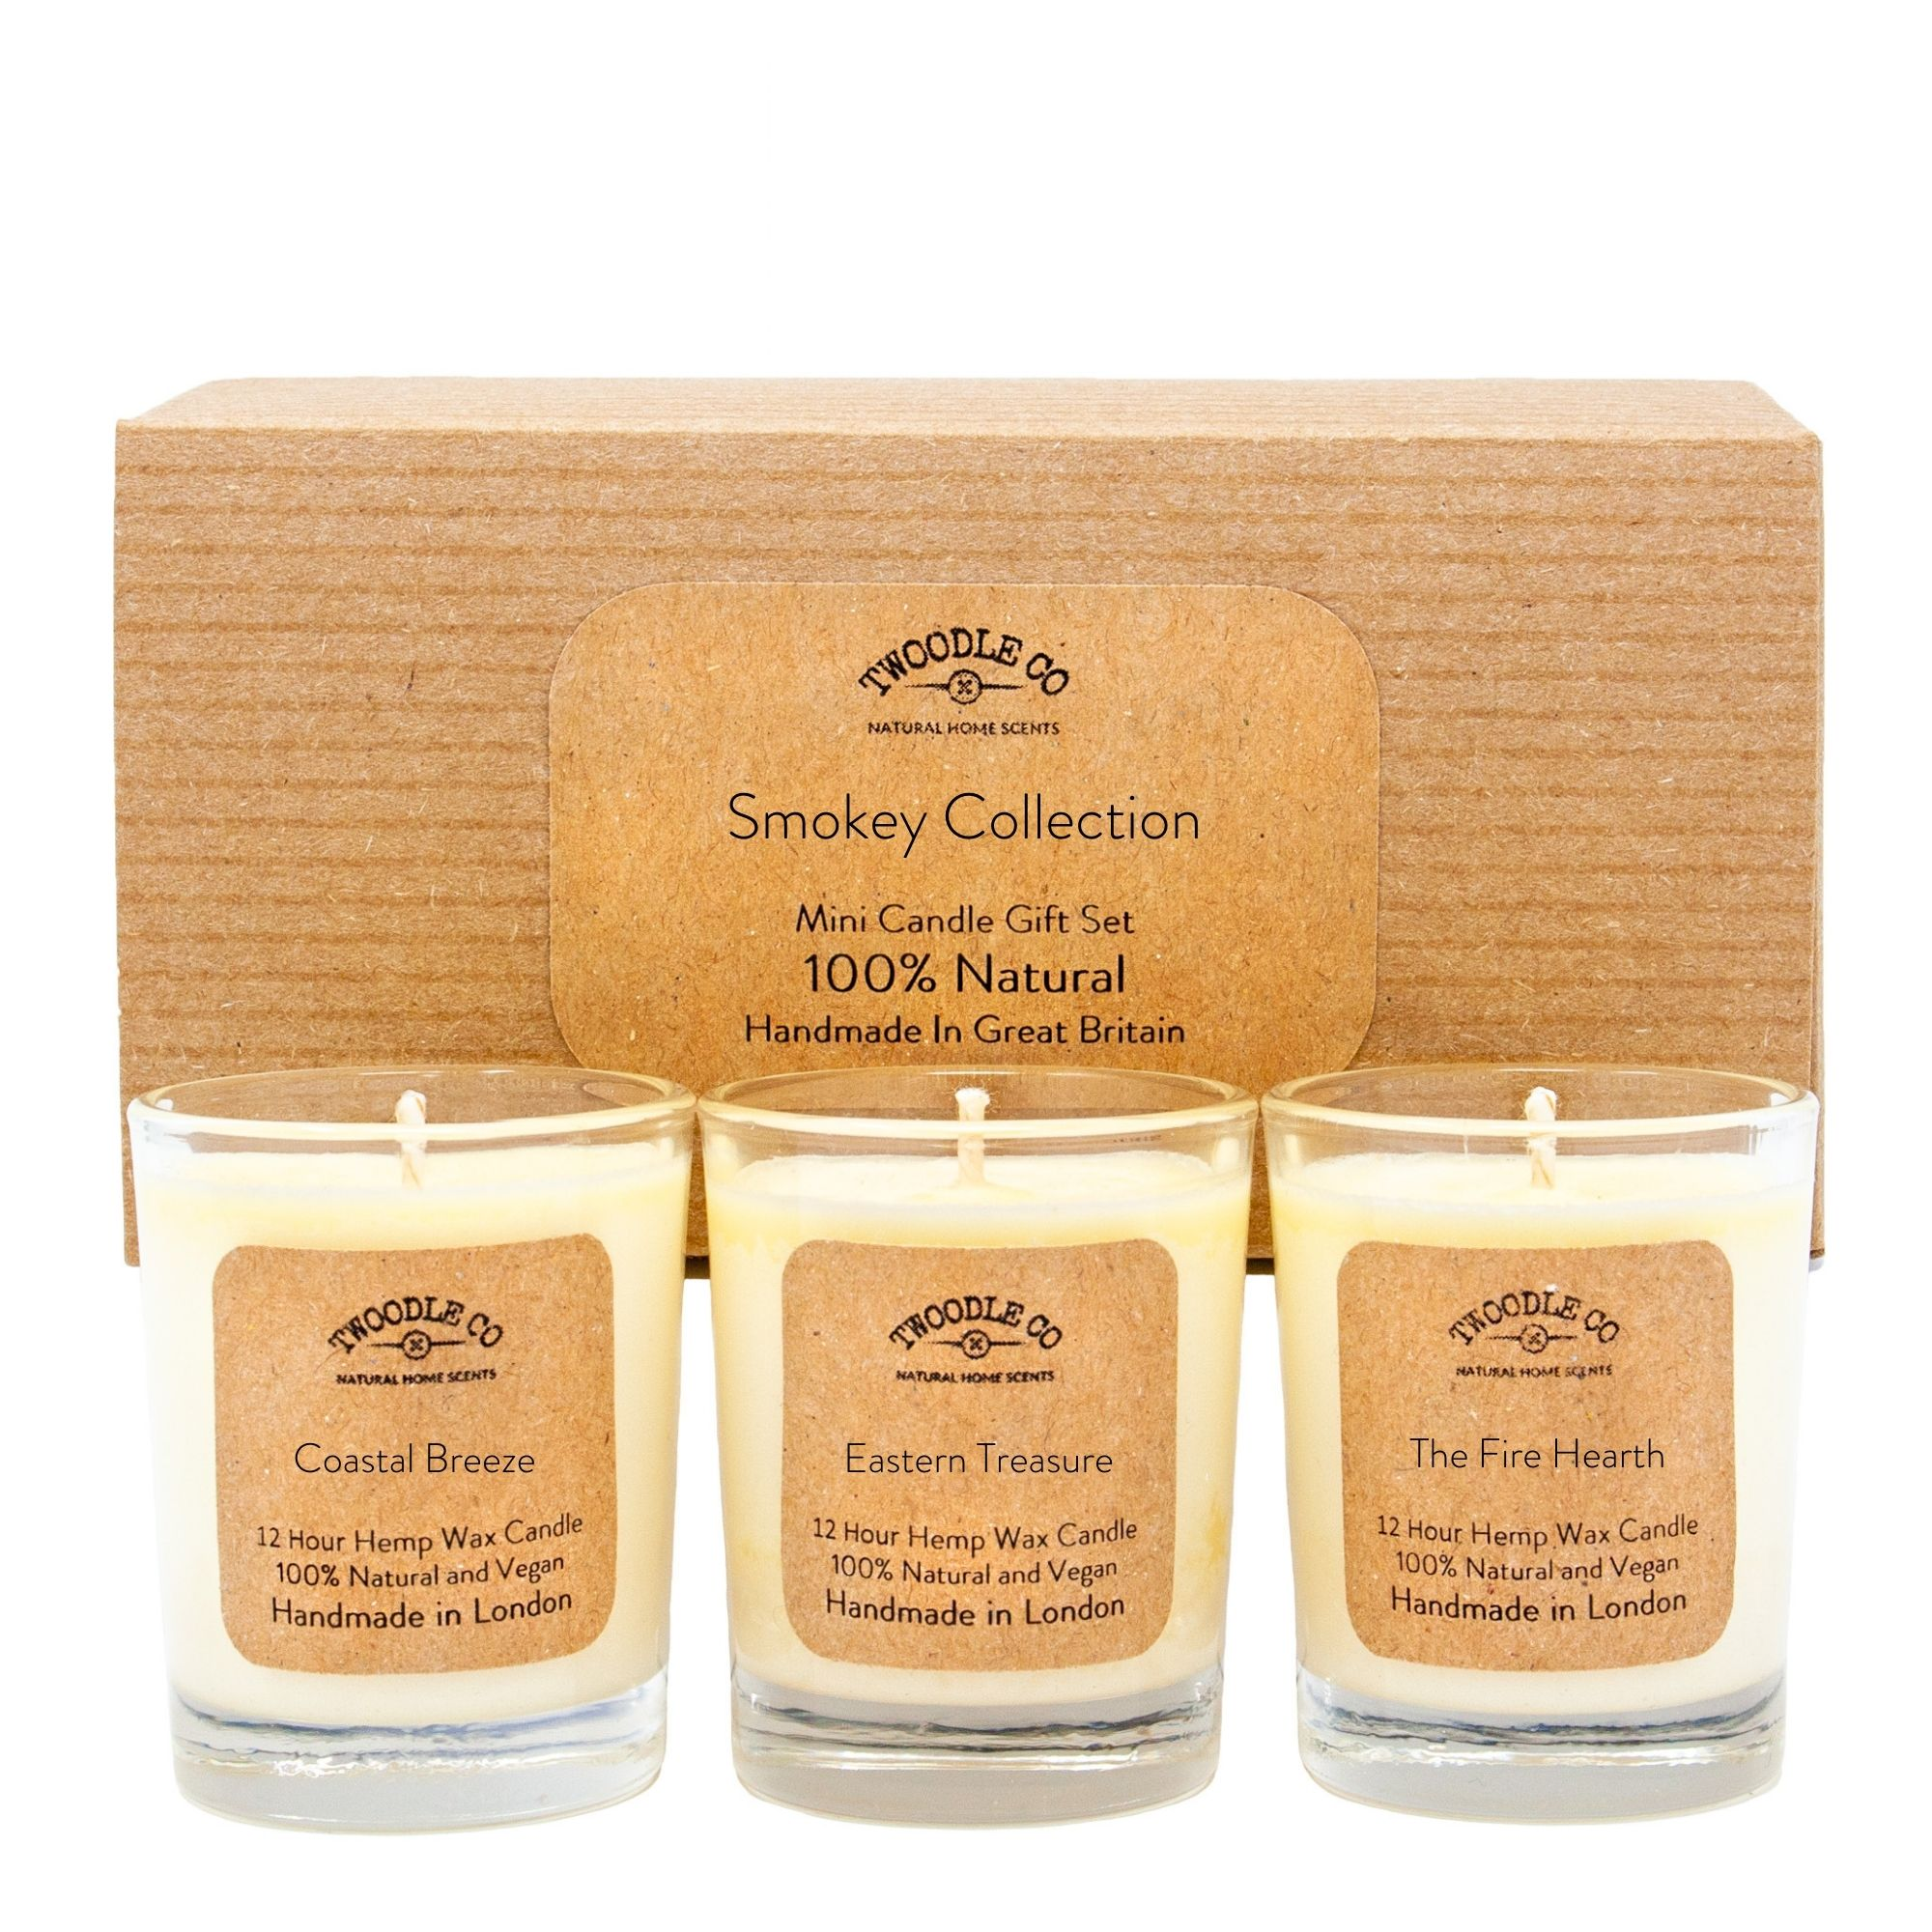 Smokey Collection Mini triple candle Gift Set by twoodle co natural home scents